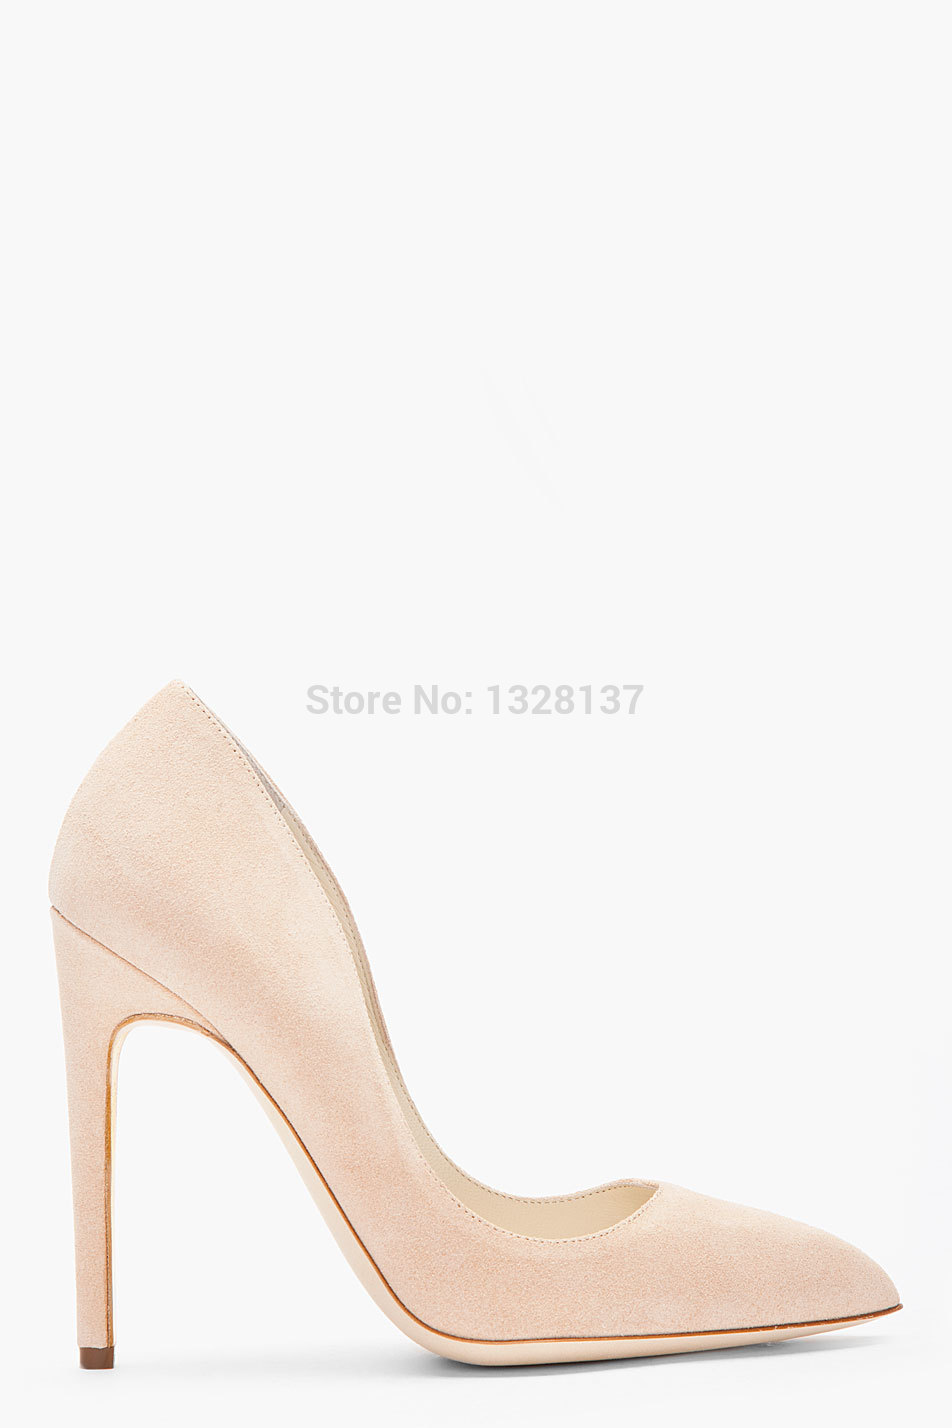 Online Get Cheap Closed Toe Nude Heels -Aliexpress.com | Alibaba Group